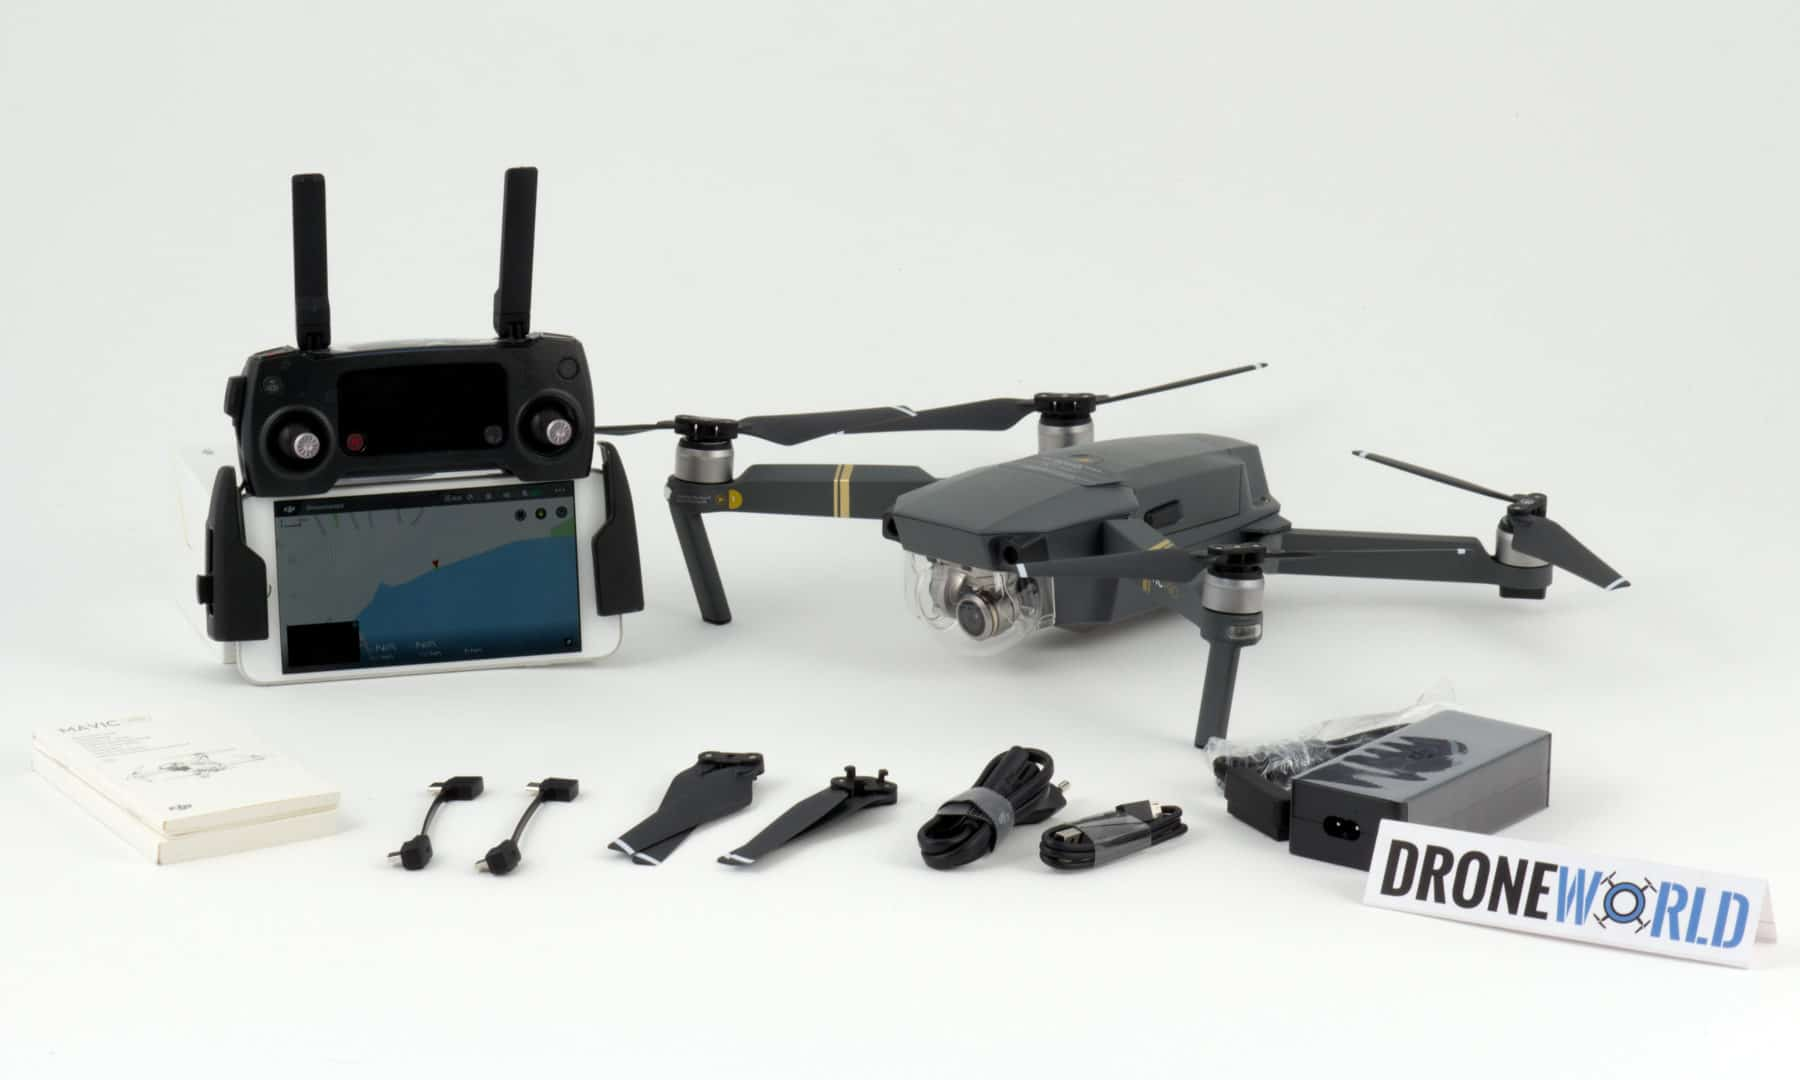 Mavic Pro - blow out accessories available at check out